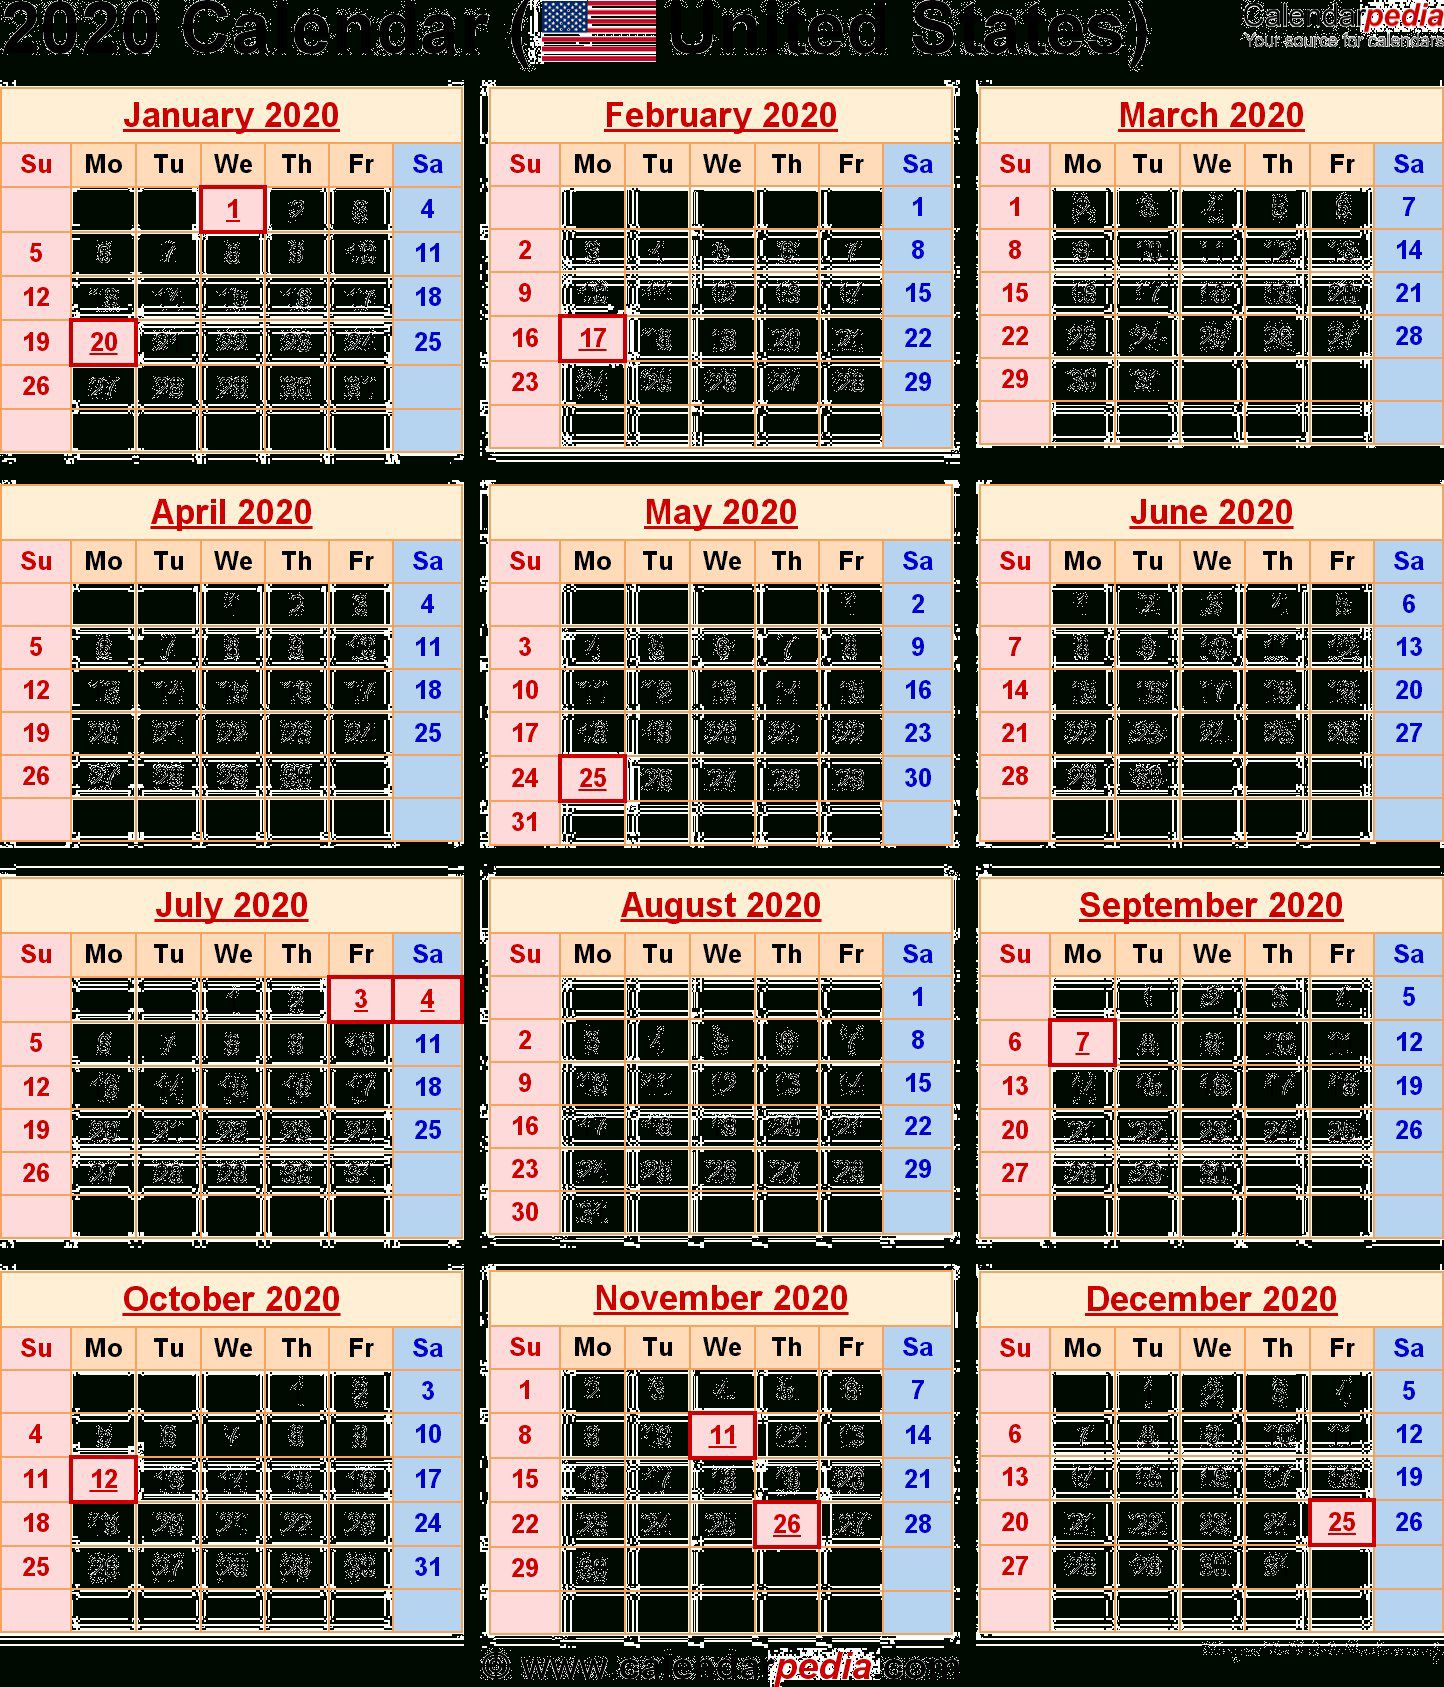 2020 Calendar Png Transparent Images | Png All with Bihar Sarkar Calendar 2020 Pdf